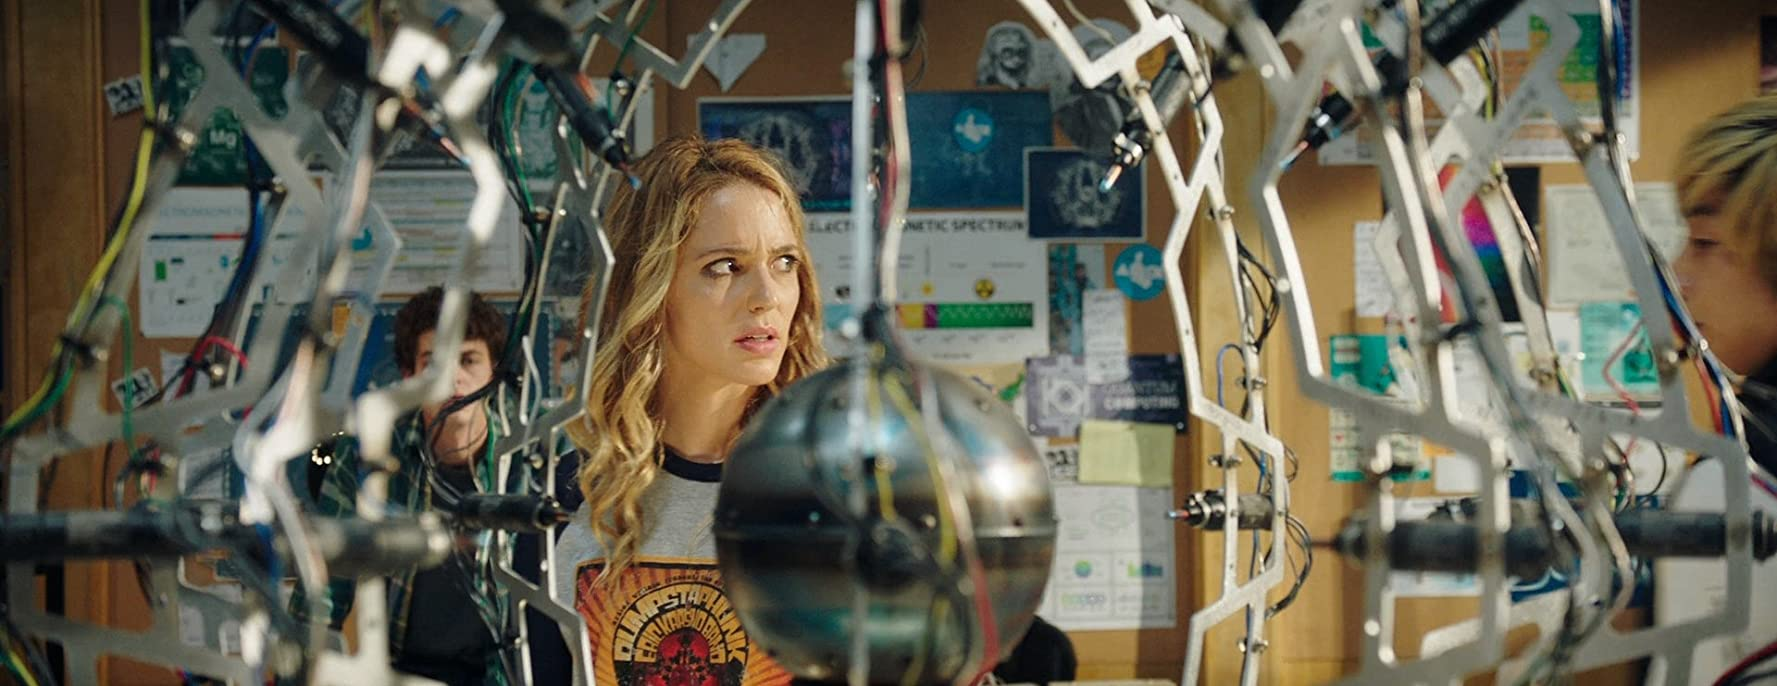 Jessica Rothe and Israel Broussard in Happy Death Day 2U (2019)